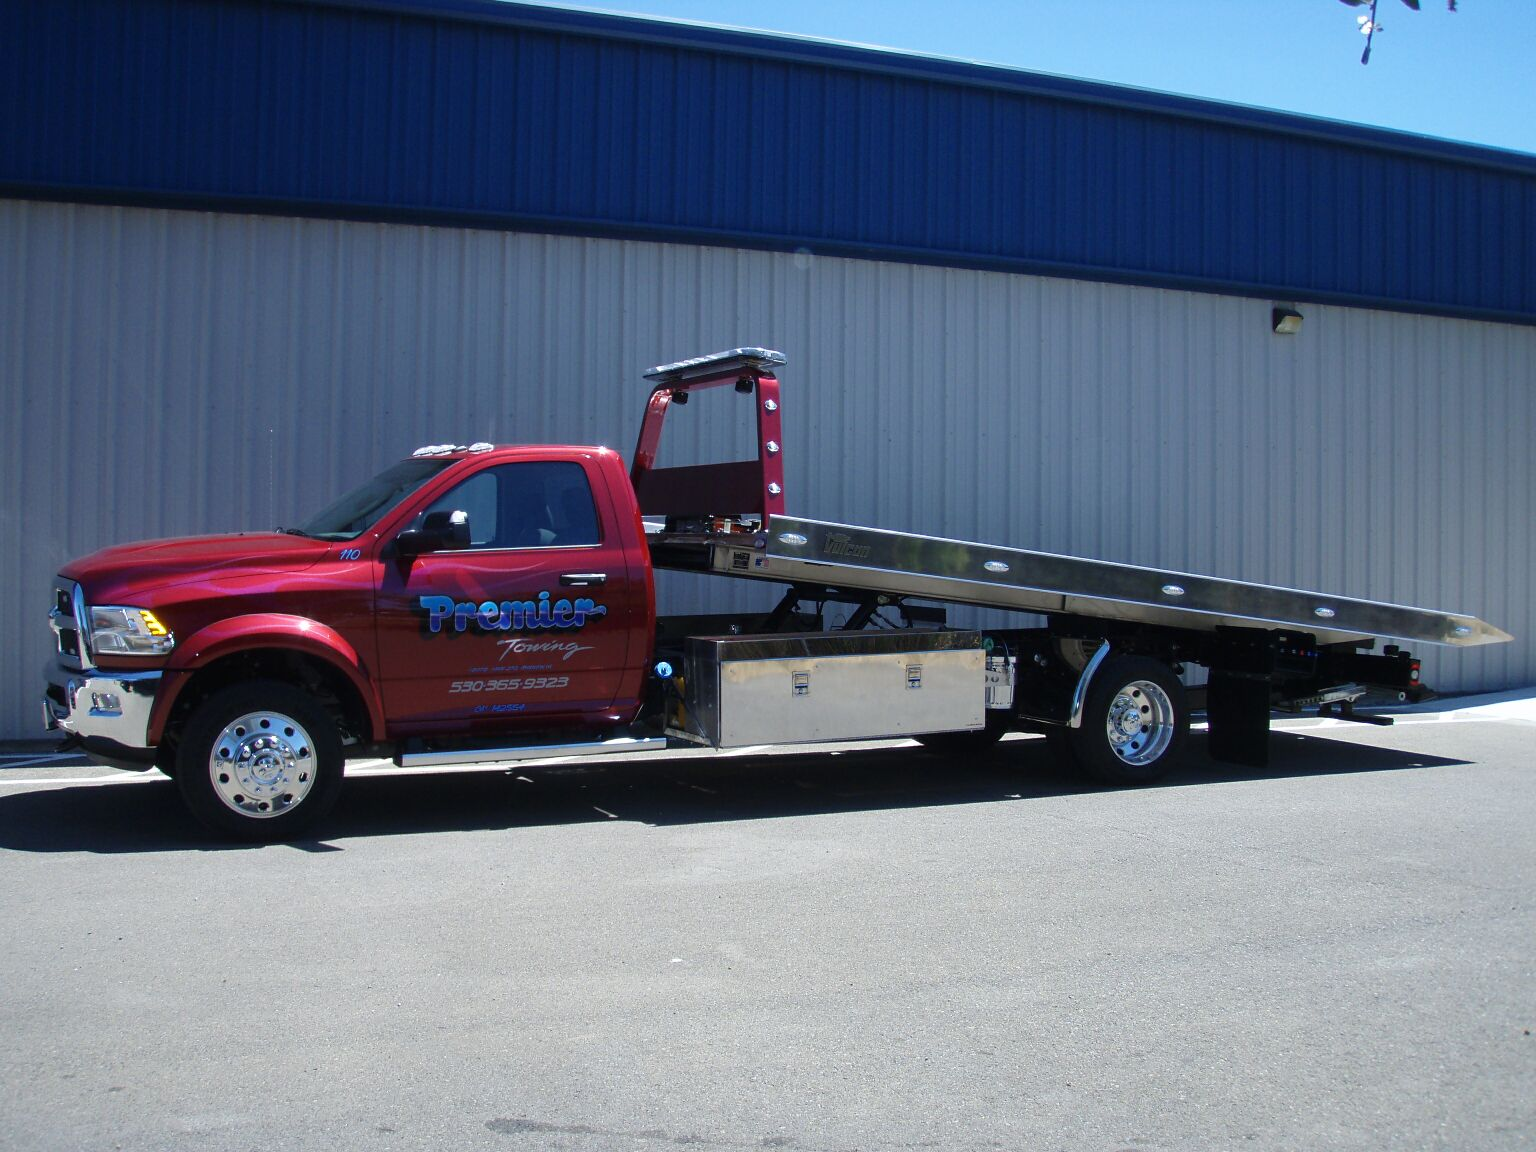 Dodge Flatbed - Towing services available all types of vehicles.